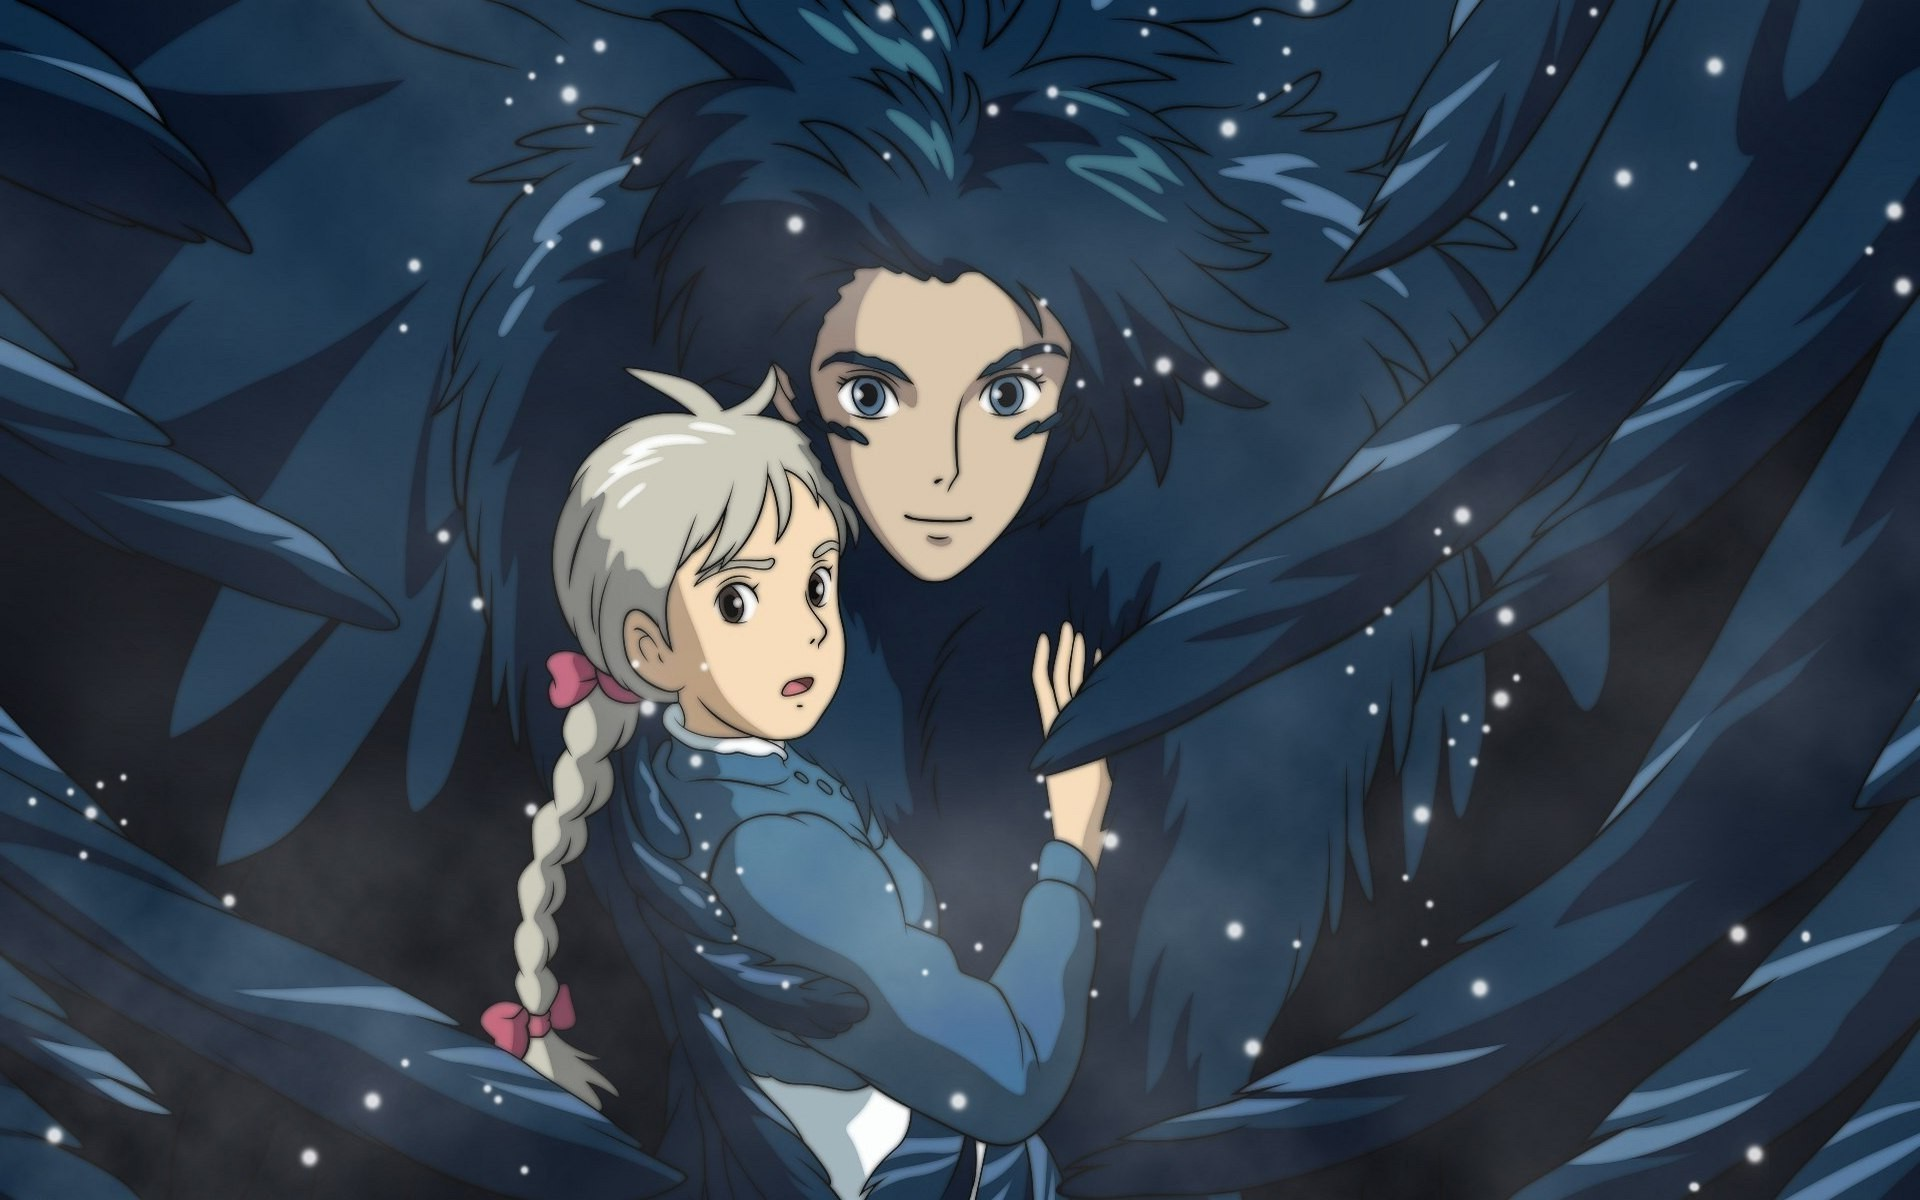 Howls Moving Castle, Howl, Studio Ghibli, Hayao Miyazaki, Anime, Movies  Wallpapers HD / Desktop and Mobile Backgrounds